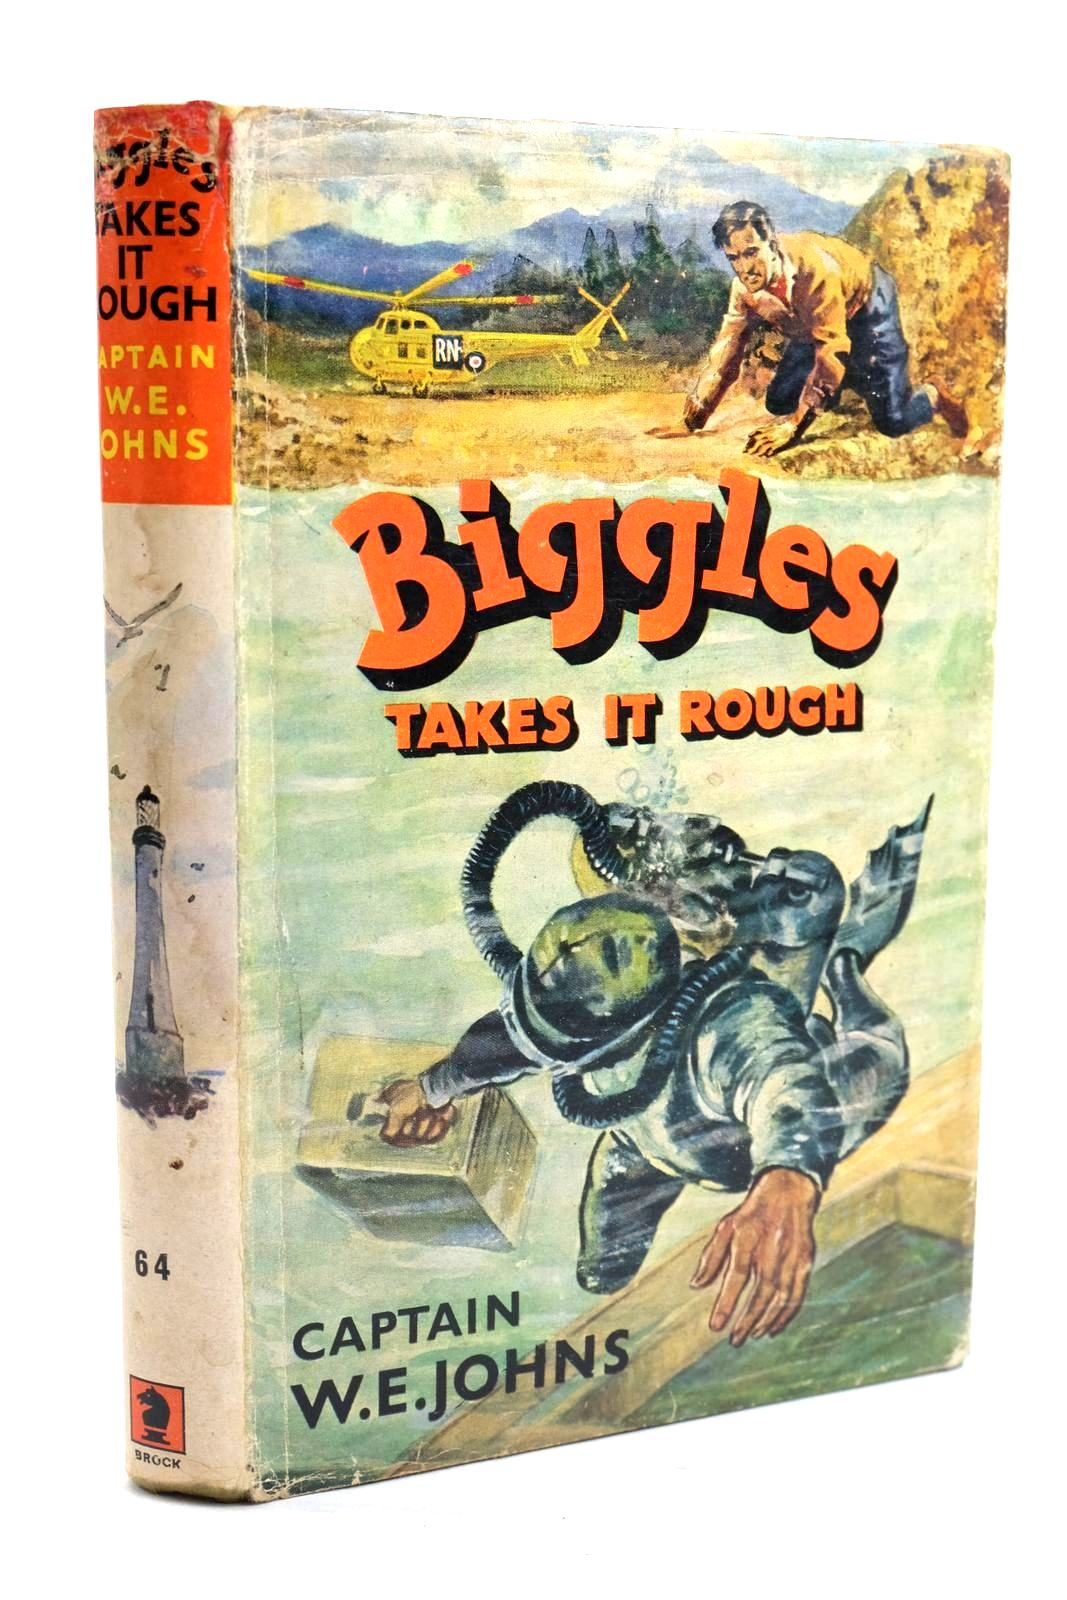 Photo of BIGGLES TAKES IT ROUGH written by Johns, W.E. illustrated by Stead, Leslie published by Brockhampton Press (STOCK CODE: 1319725)  for sale by Stella & Rose's Books